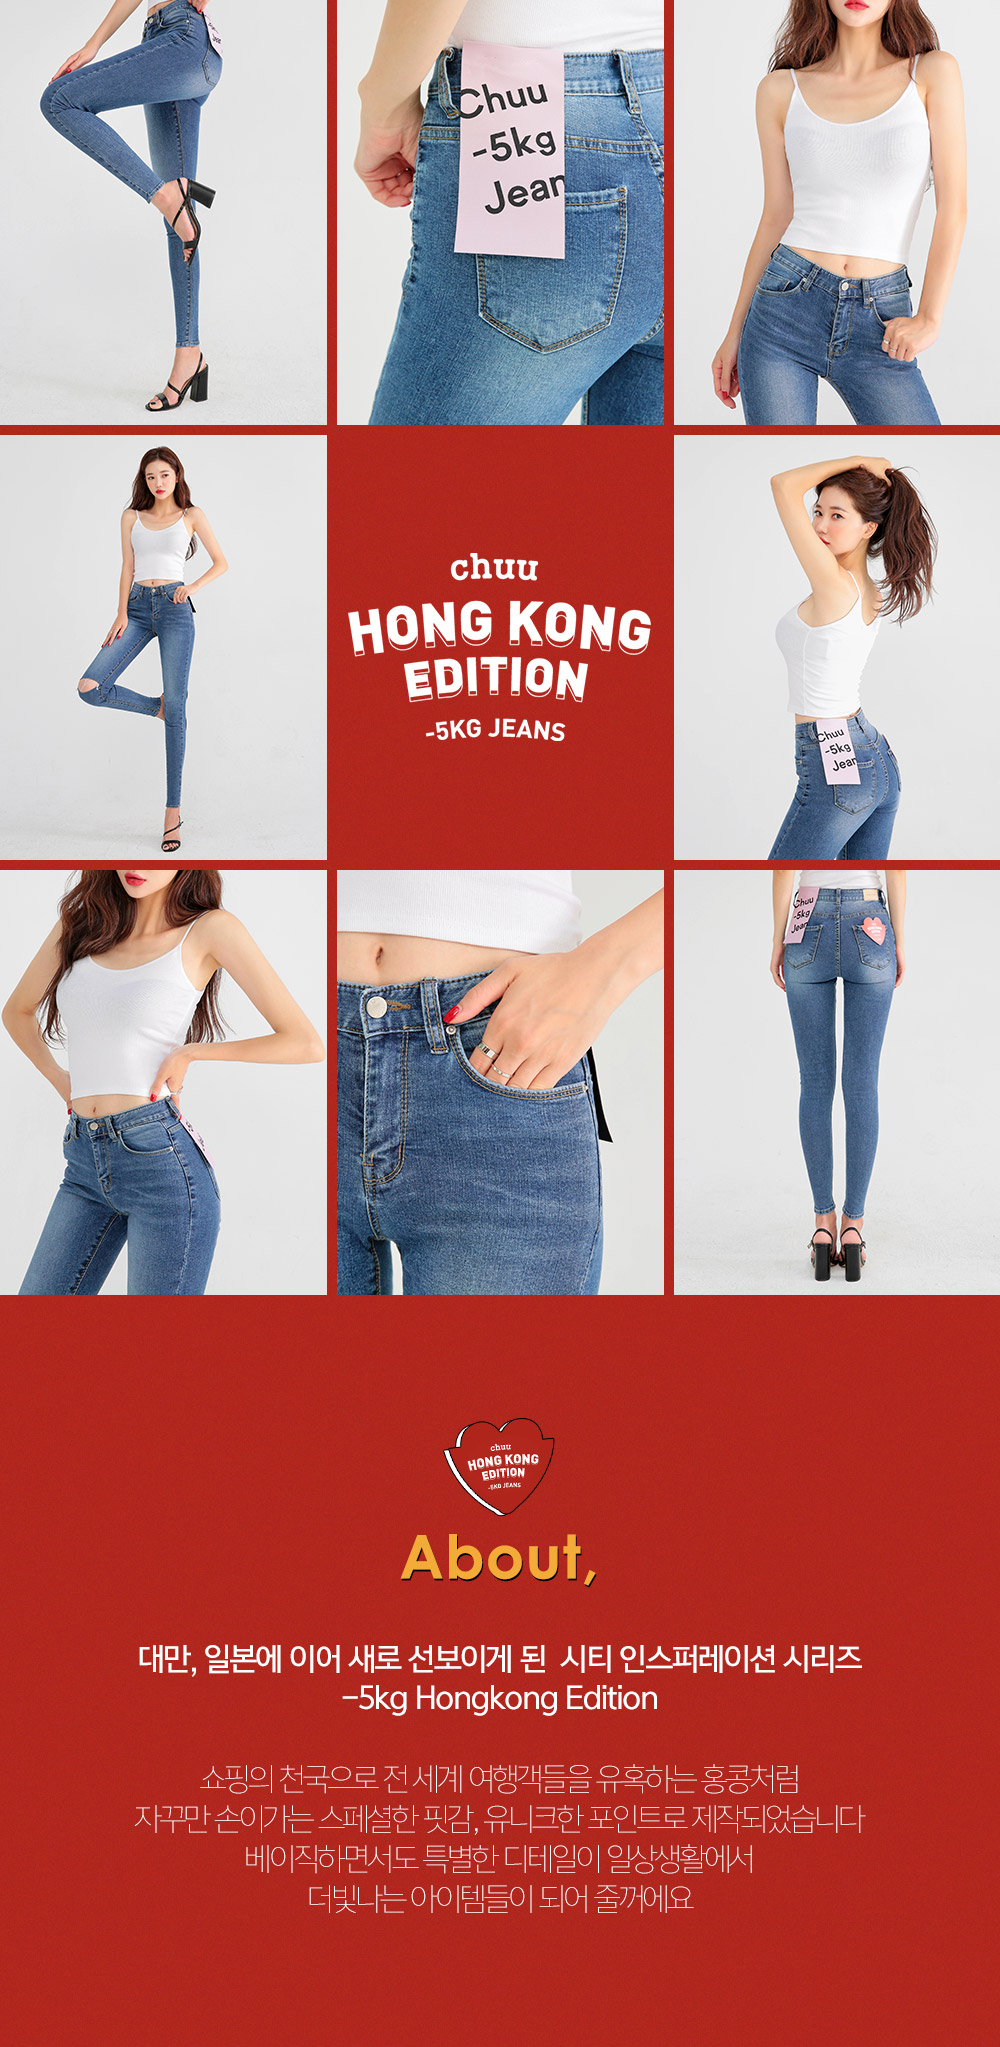 //cdn.nhanh.vn/cdn/store/29770/psCT/20190304/12125721/_5KG_Hongkong_Edition_vol_1_(hongkong_edition_vol1_intro_(1)).jpg